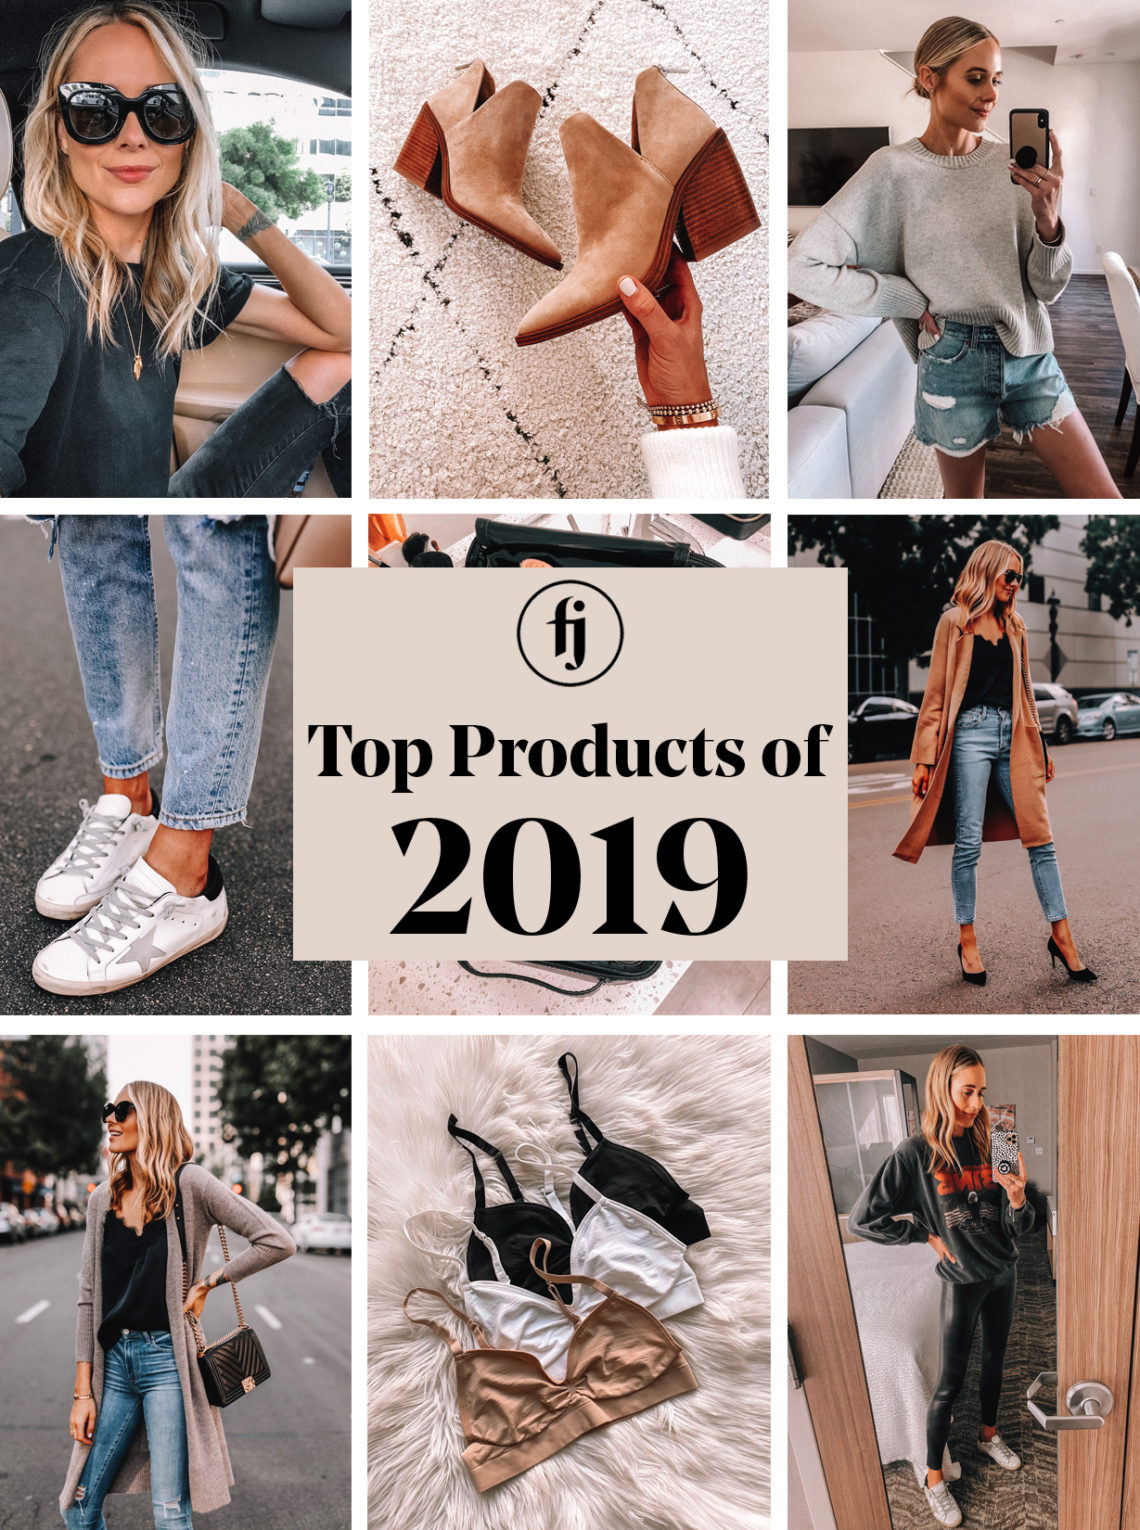 2019 top products